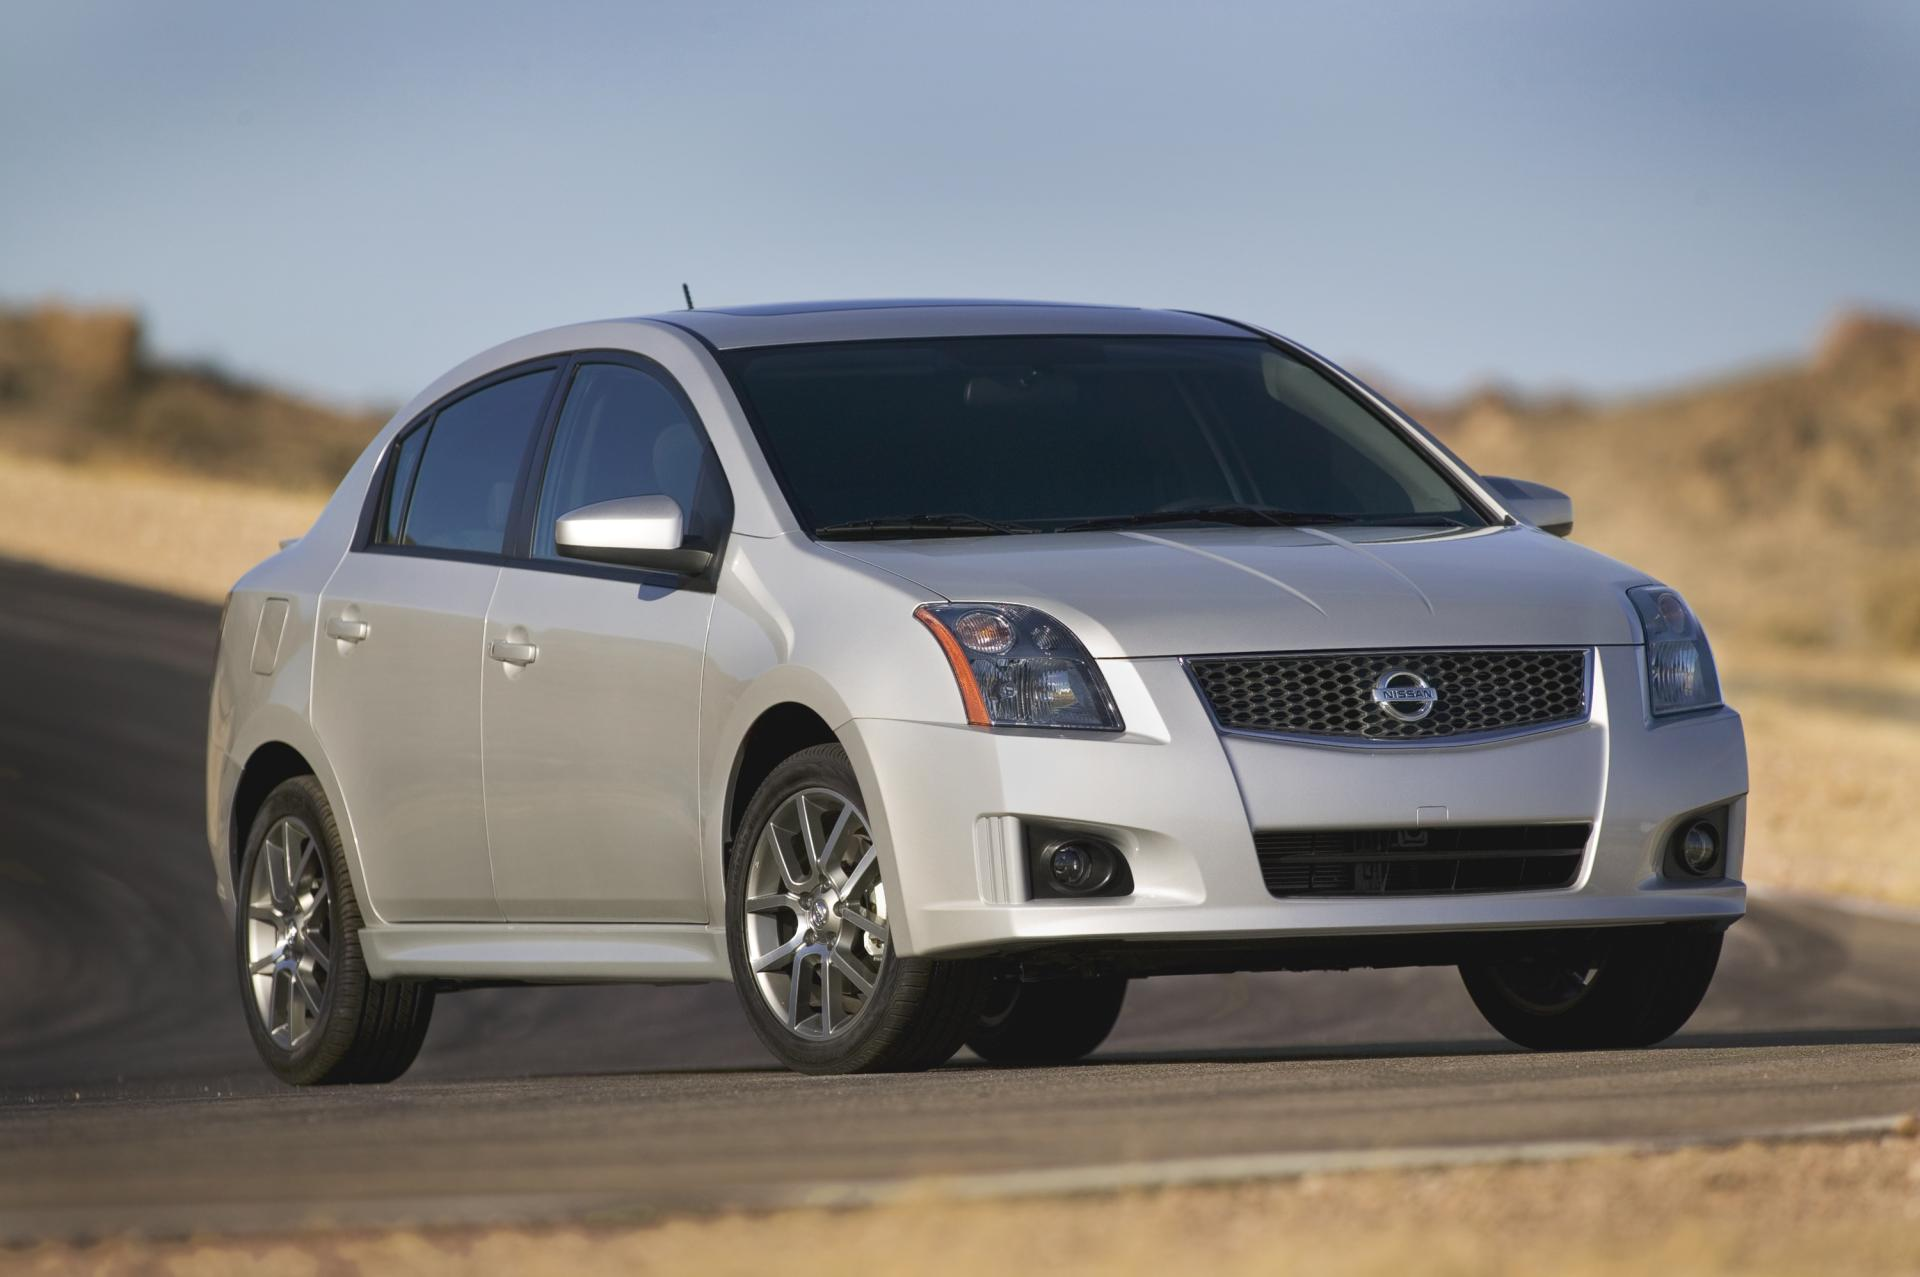 2012 nissan sentra se r news and information. Black Bedroom Furniture Sets. Home Design Ideas